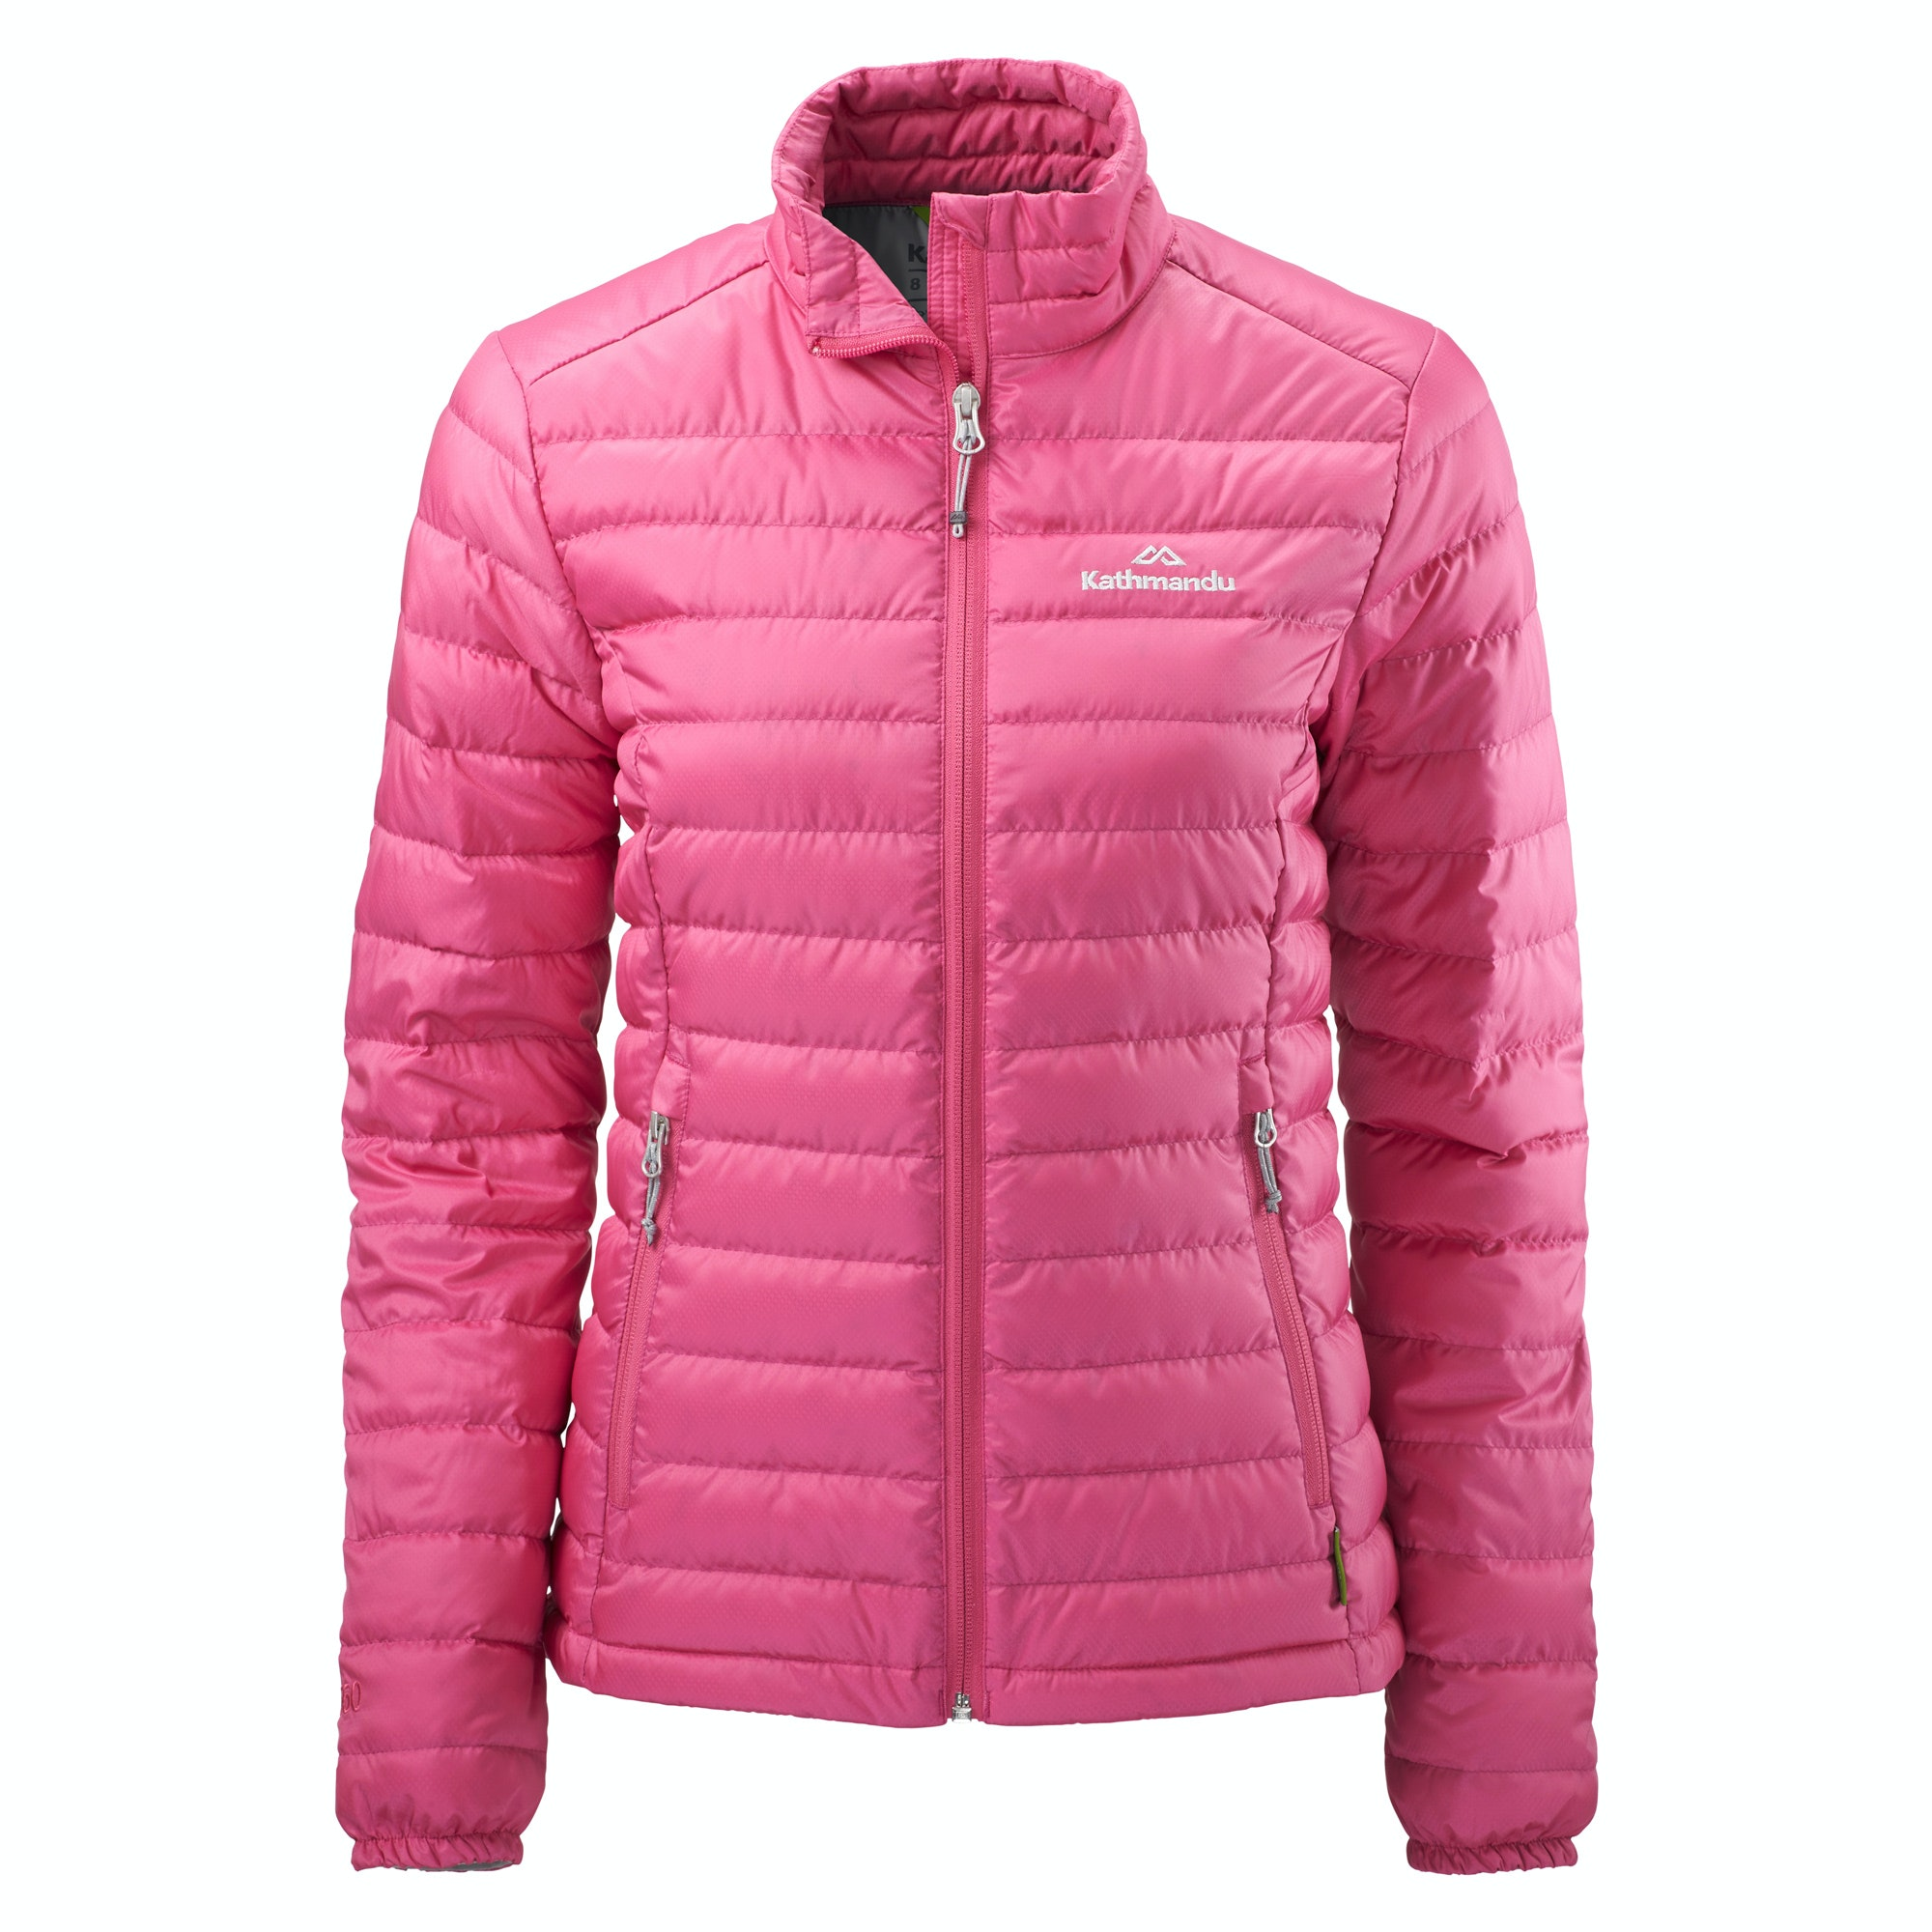 Down puffer jacket women